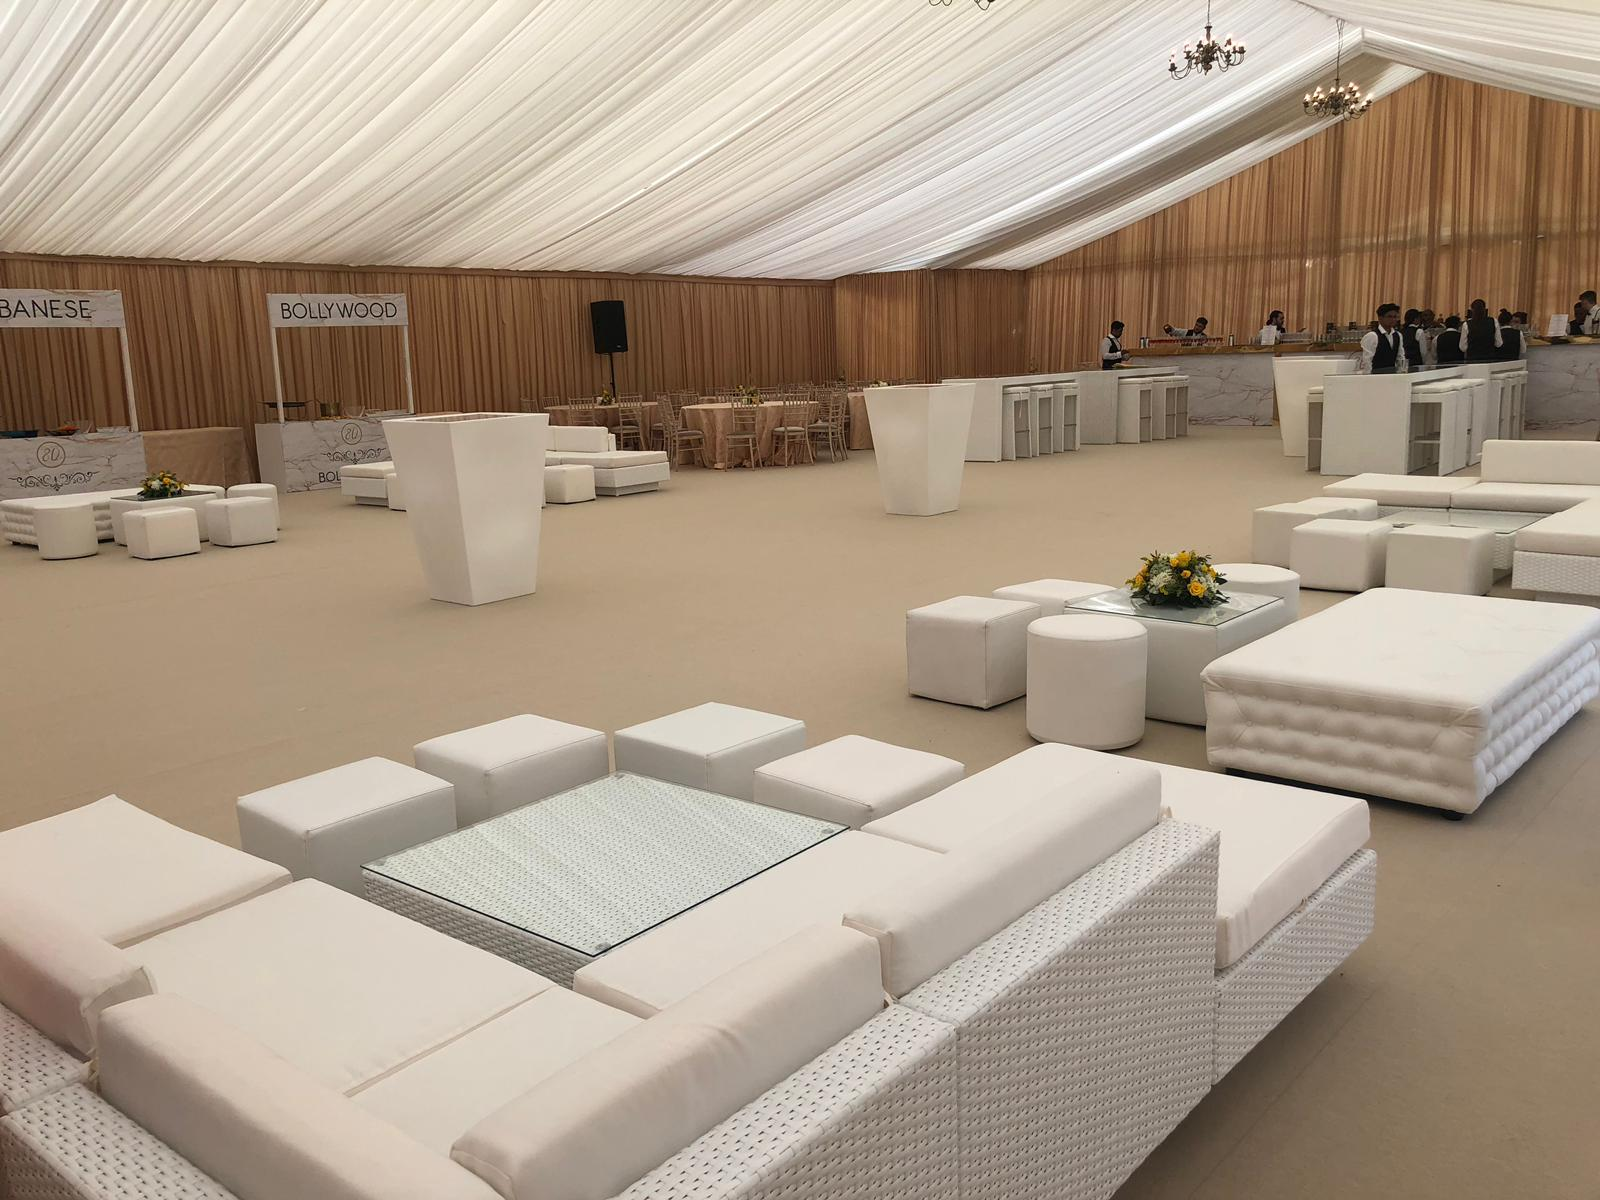 white rattan sofas with matching table, white faux leather cubed seating, white faux leather rounded seating, white faux leather bench, tall white poseur tables, white rattan tables and stools at party in marquee